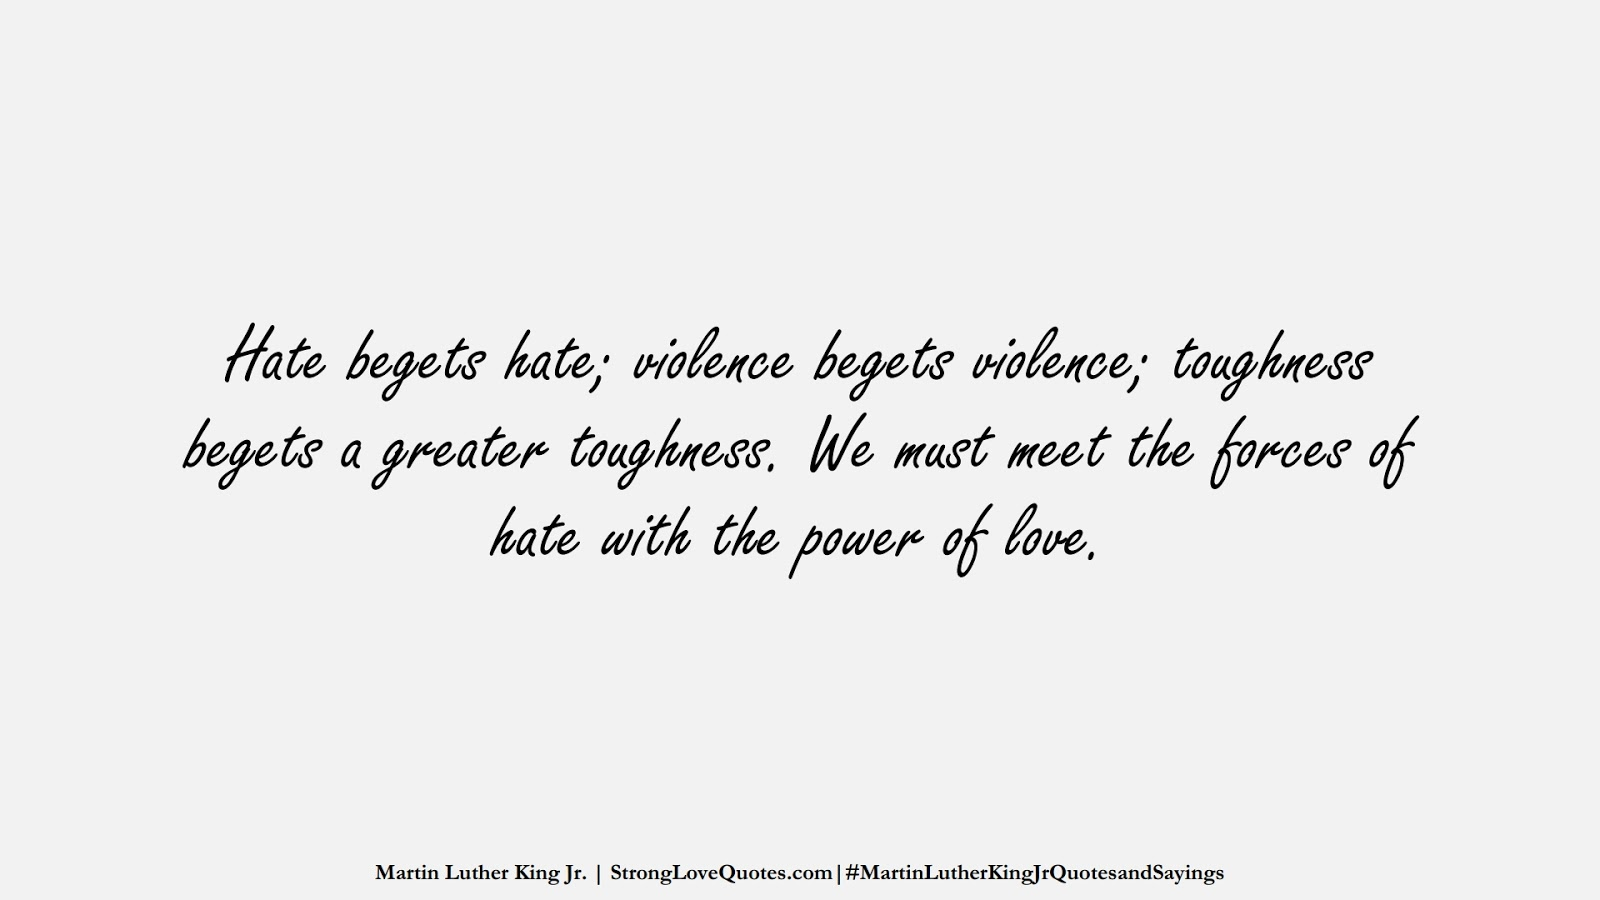 Hate begets hate; violence begets violence; toughness begets a greater toughness. We must meet the forces of hate with the power of love. (Martin Luther King Jr.);  #MartinLutherKingJrQuotesandSayings